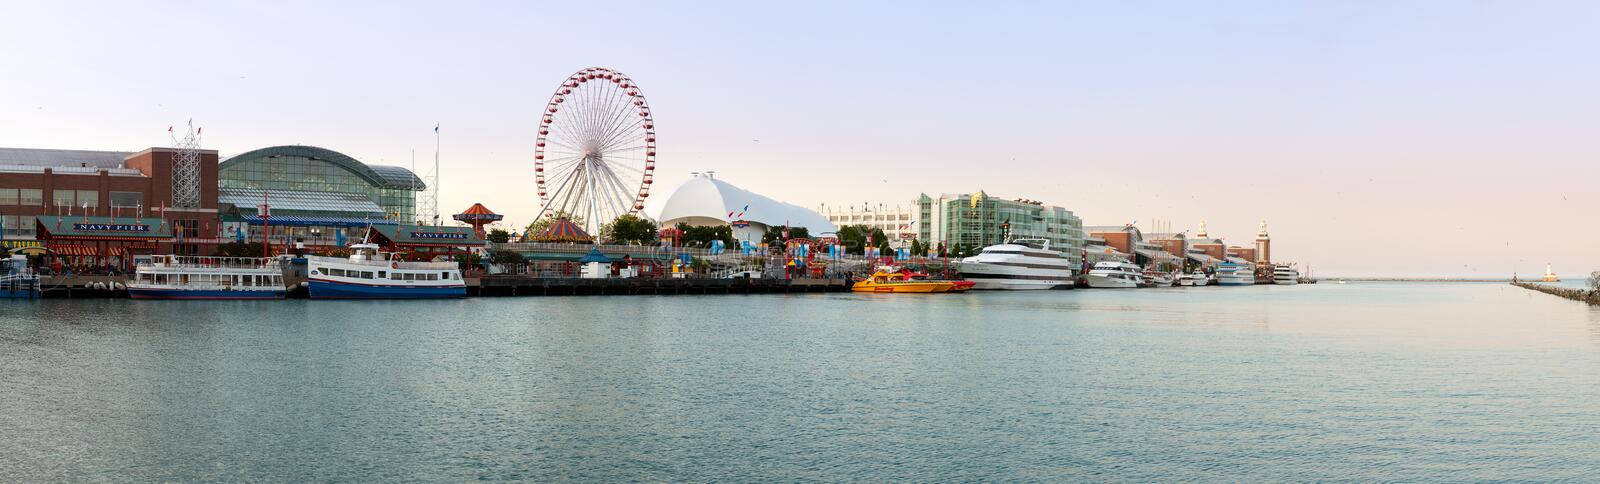 Panorama of Navy Pier in Chicago. CHICAGO - MAY 14: Panorama of Navy Pier on May 14, 2012. Navy Pier is a 3300 foot pier built in 1916 stock image